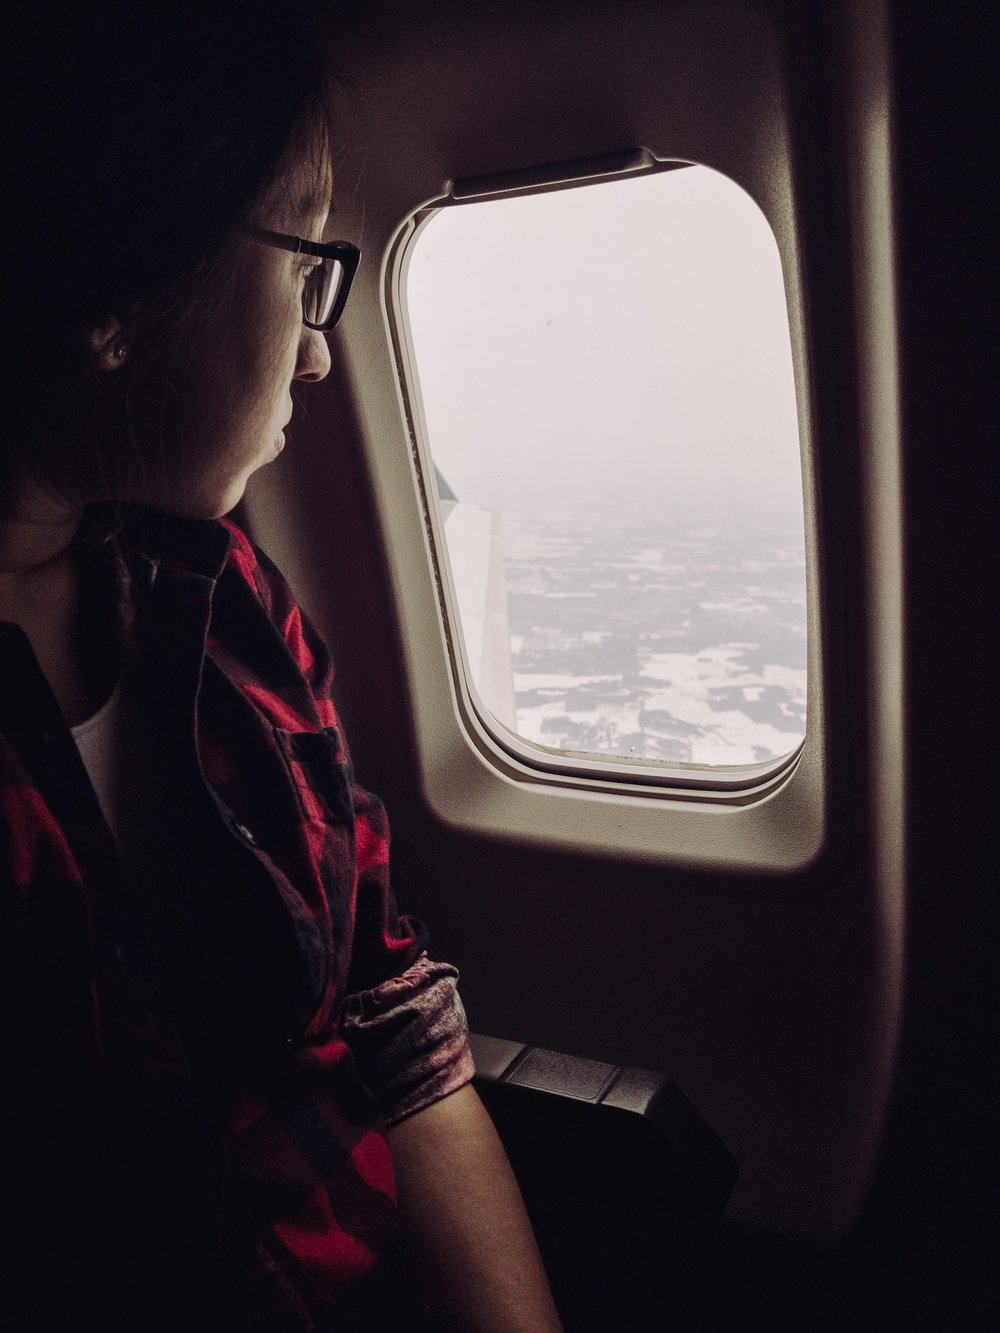 Young woman looking out plane window. JPG